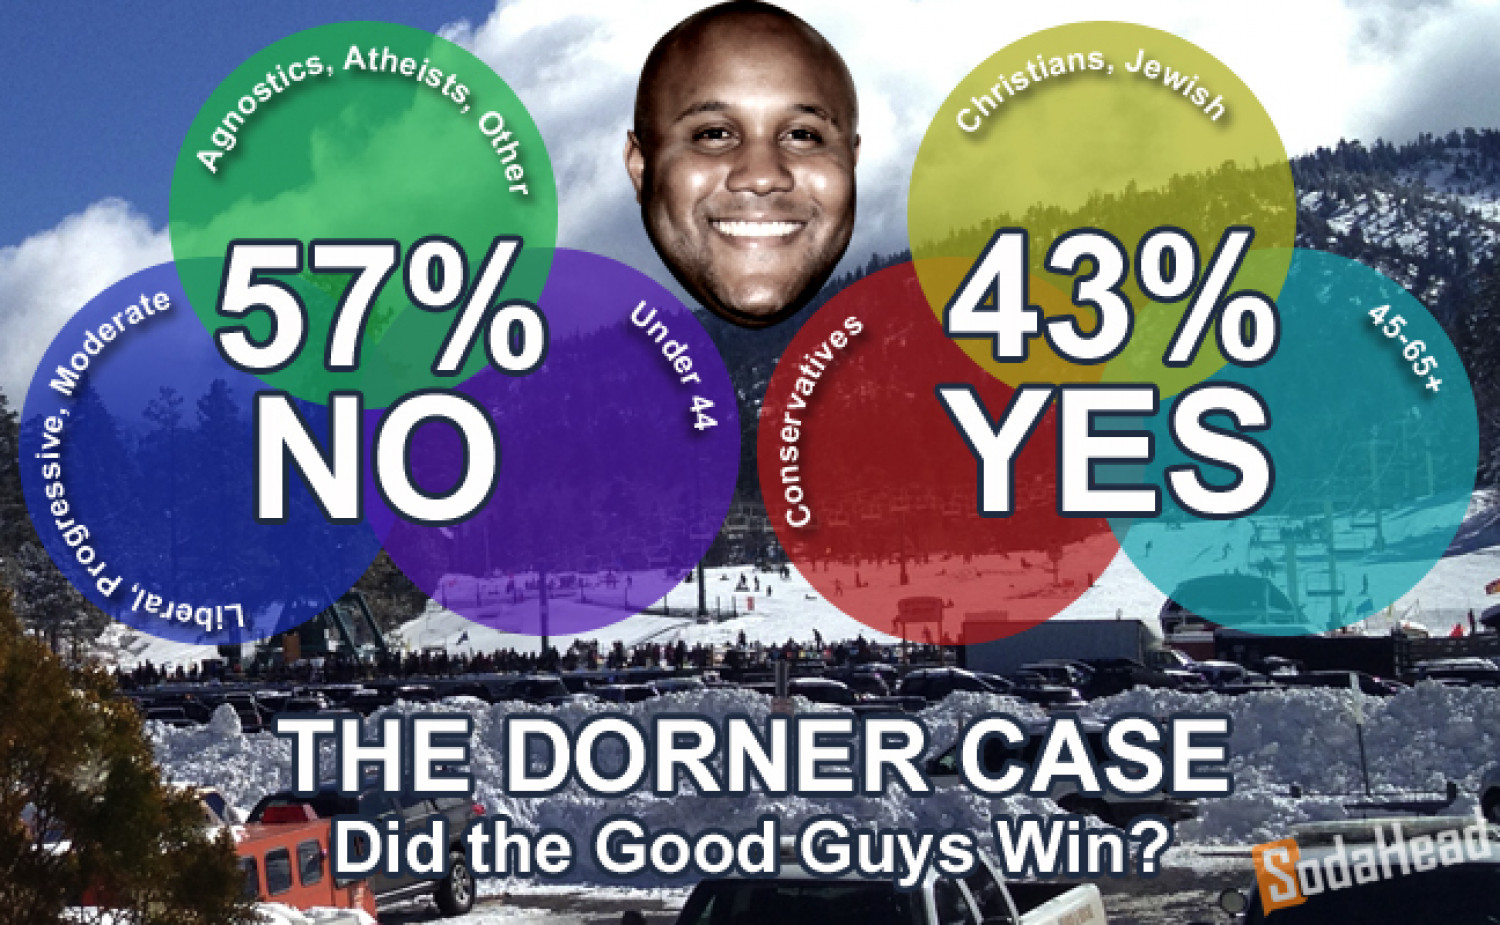 Small Majority Say the 'Good Guys' Didn't Win in Dorner Case Infographic